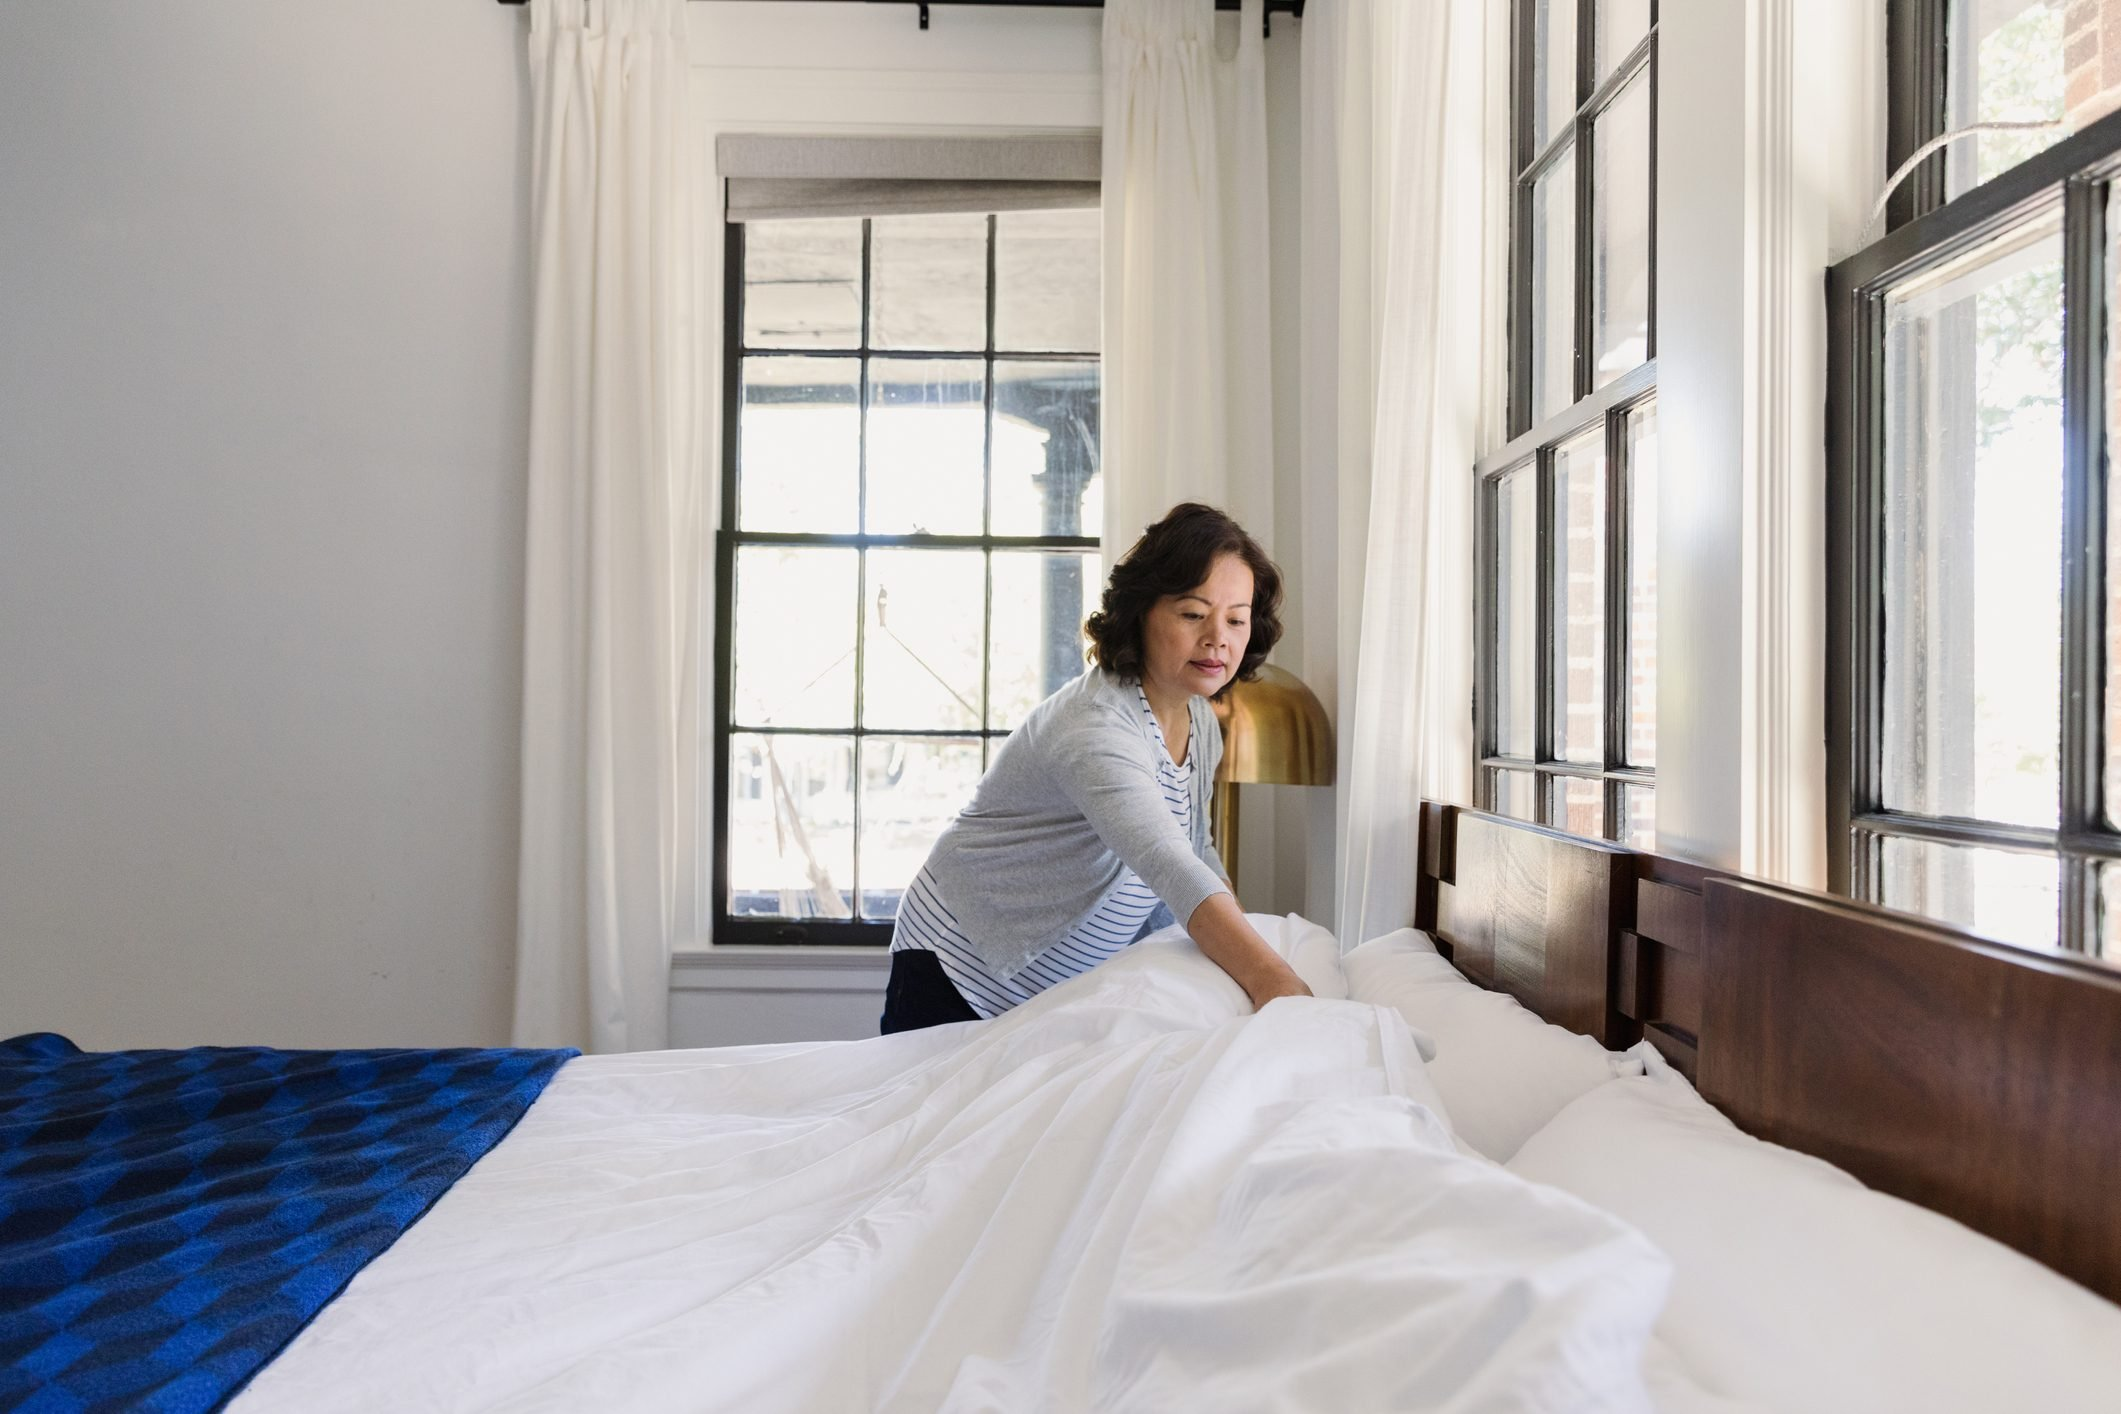 Senior woman concentrates while making her bed